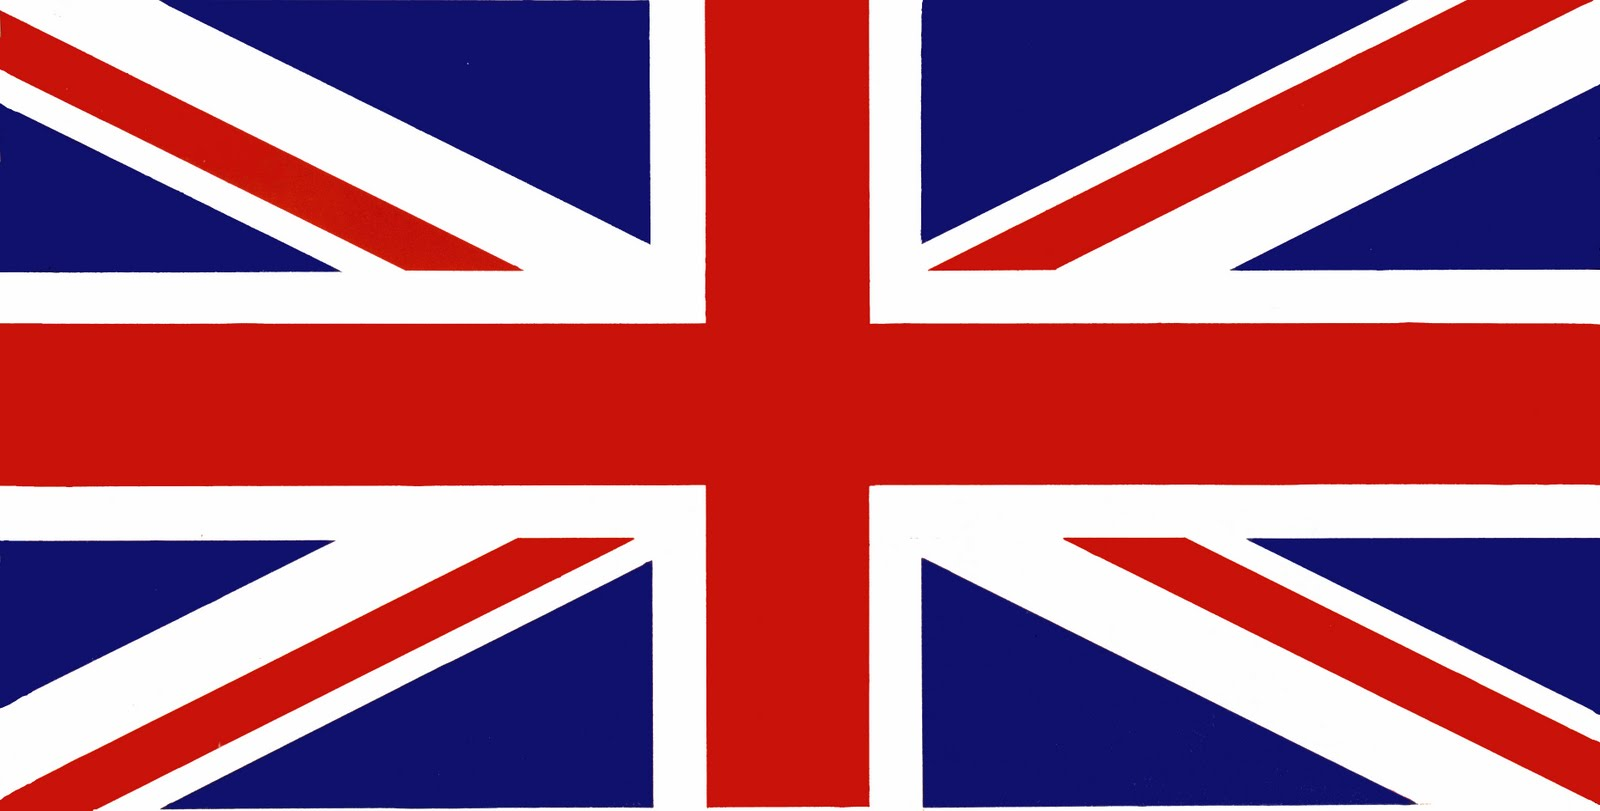 United Kingdom clipart #18, Download drawings